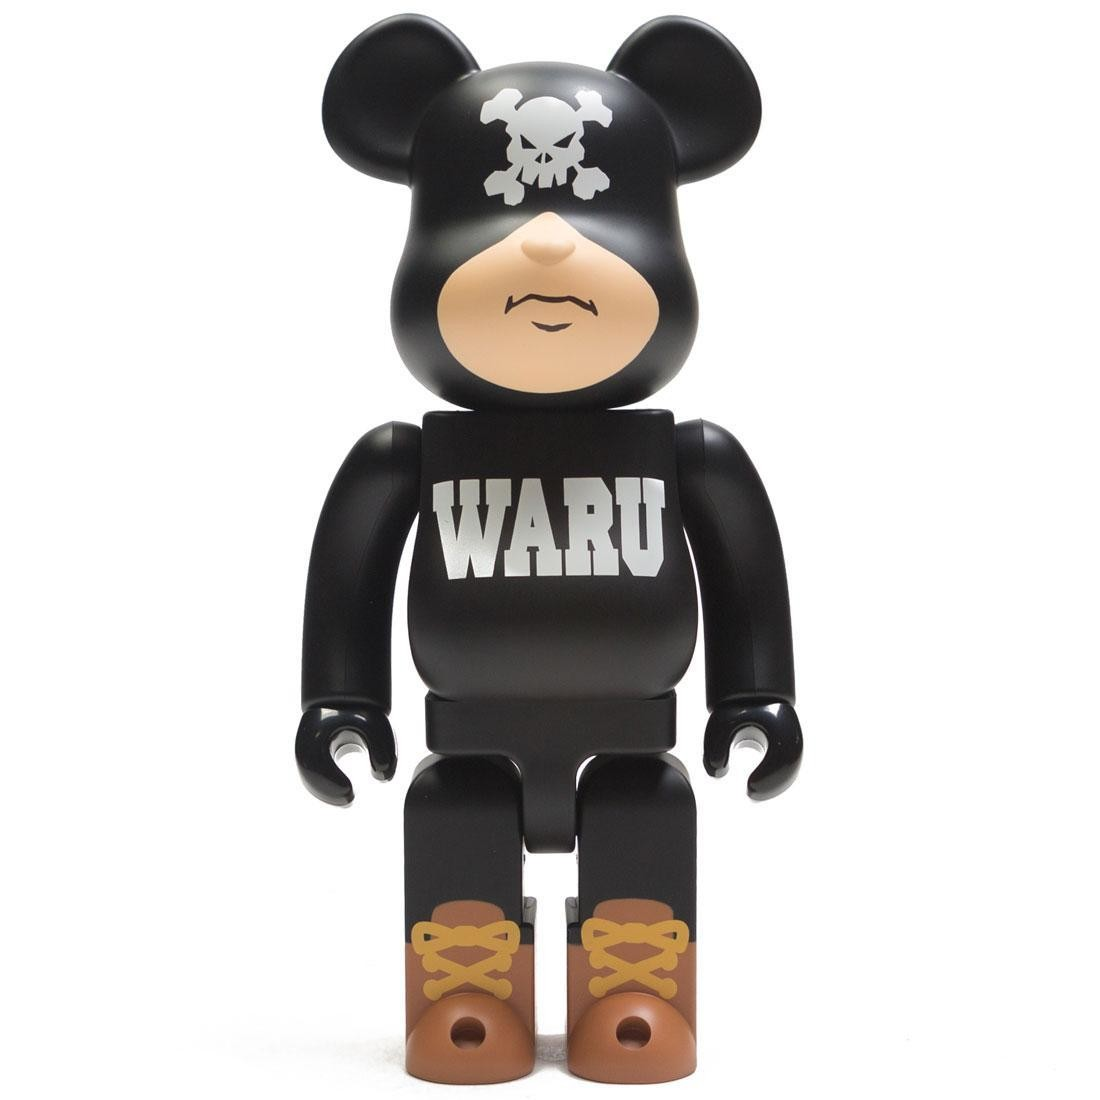 Medicom Santastic! Entertainment Tokyo Tribe Waru 400% Black Bearbrick Figure (black)